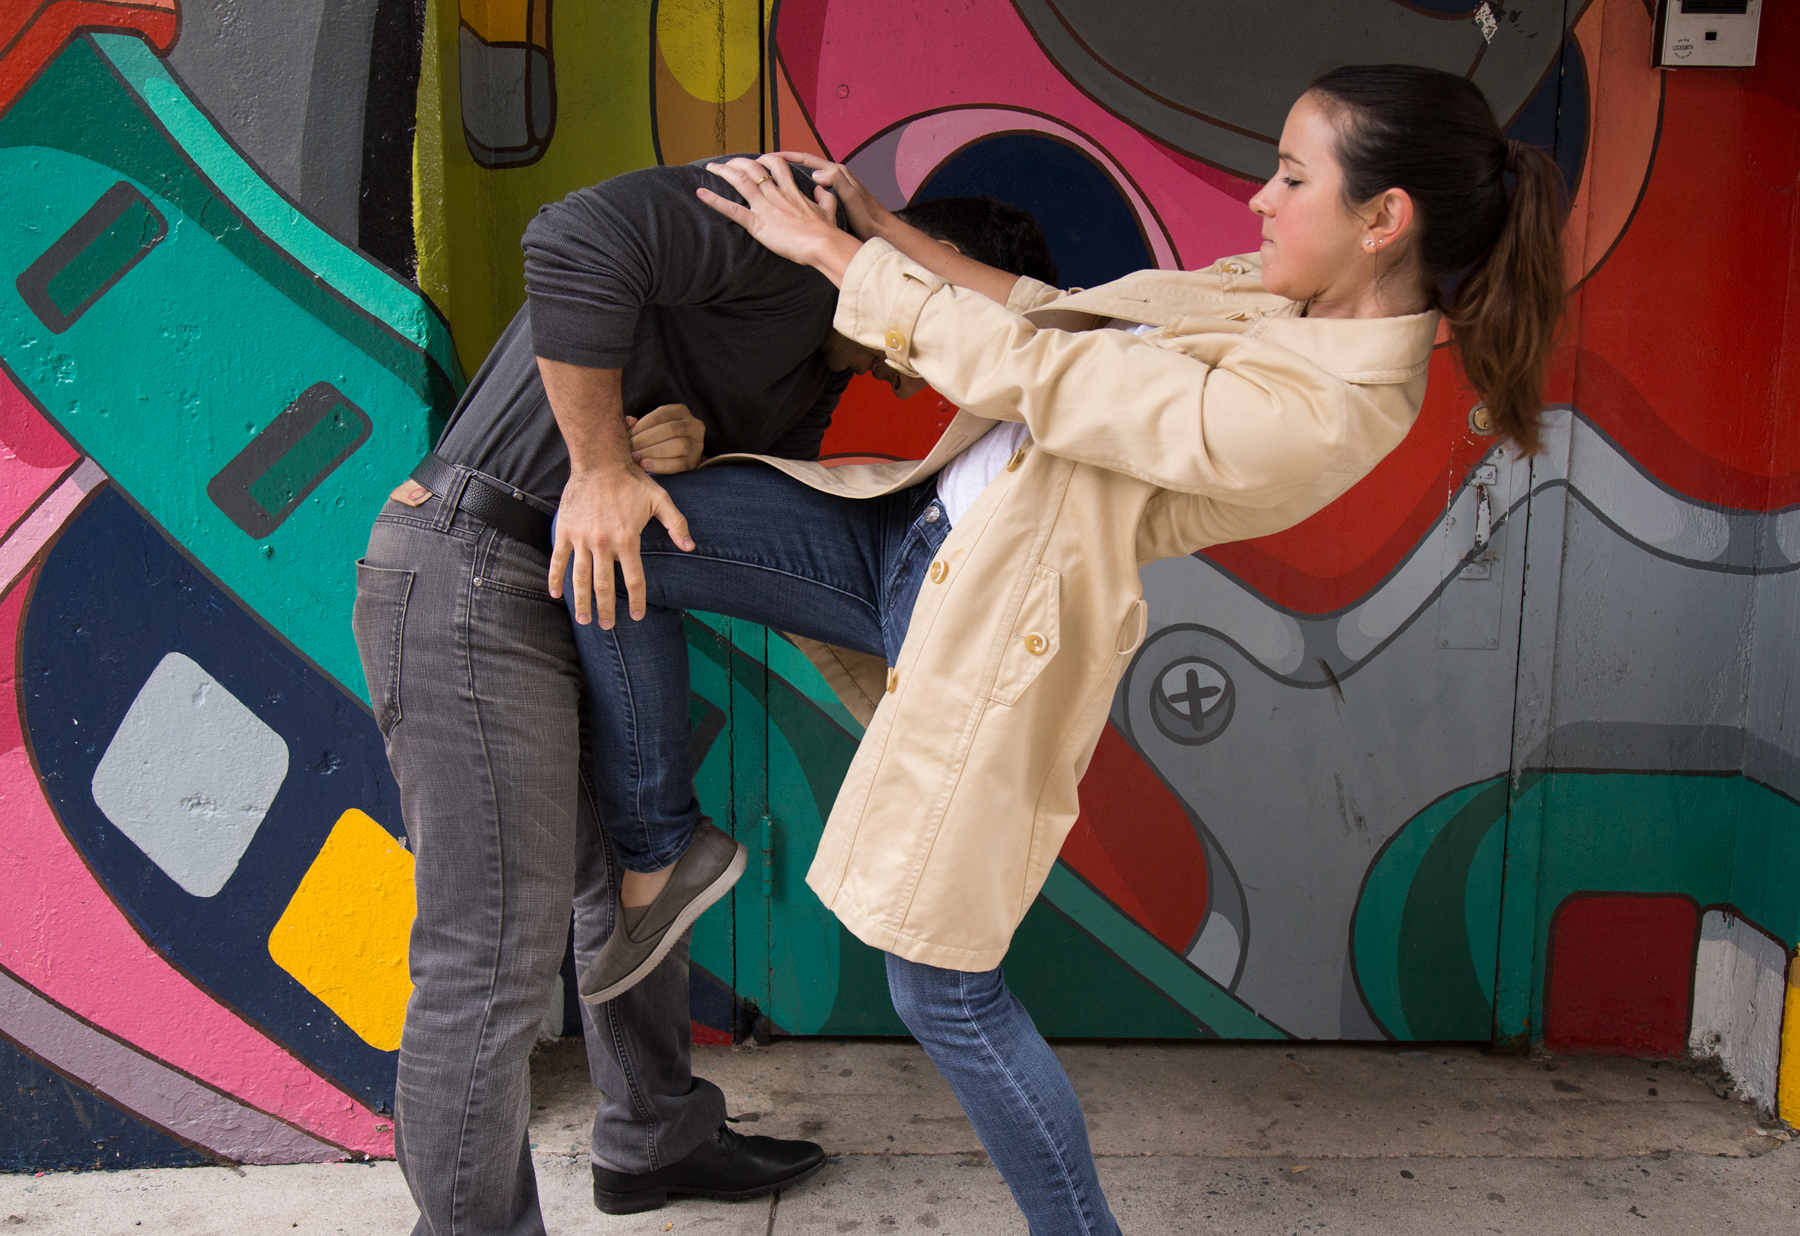 Watch Self-defense coaches reveal tips everyone should know to stay safe video